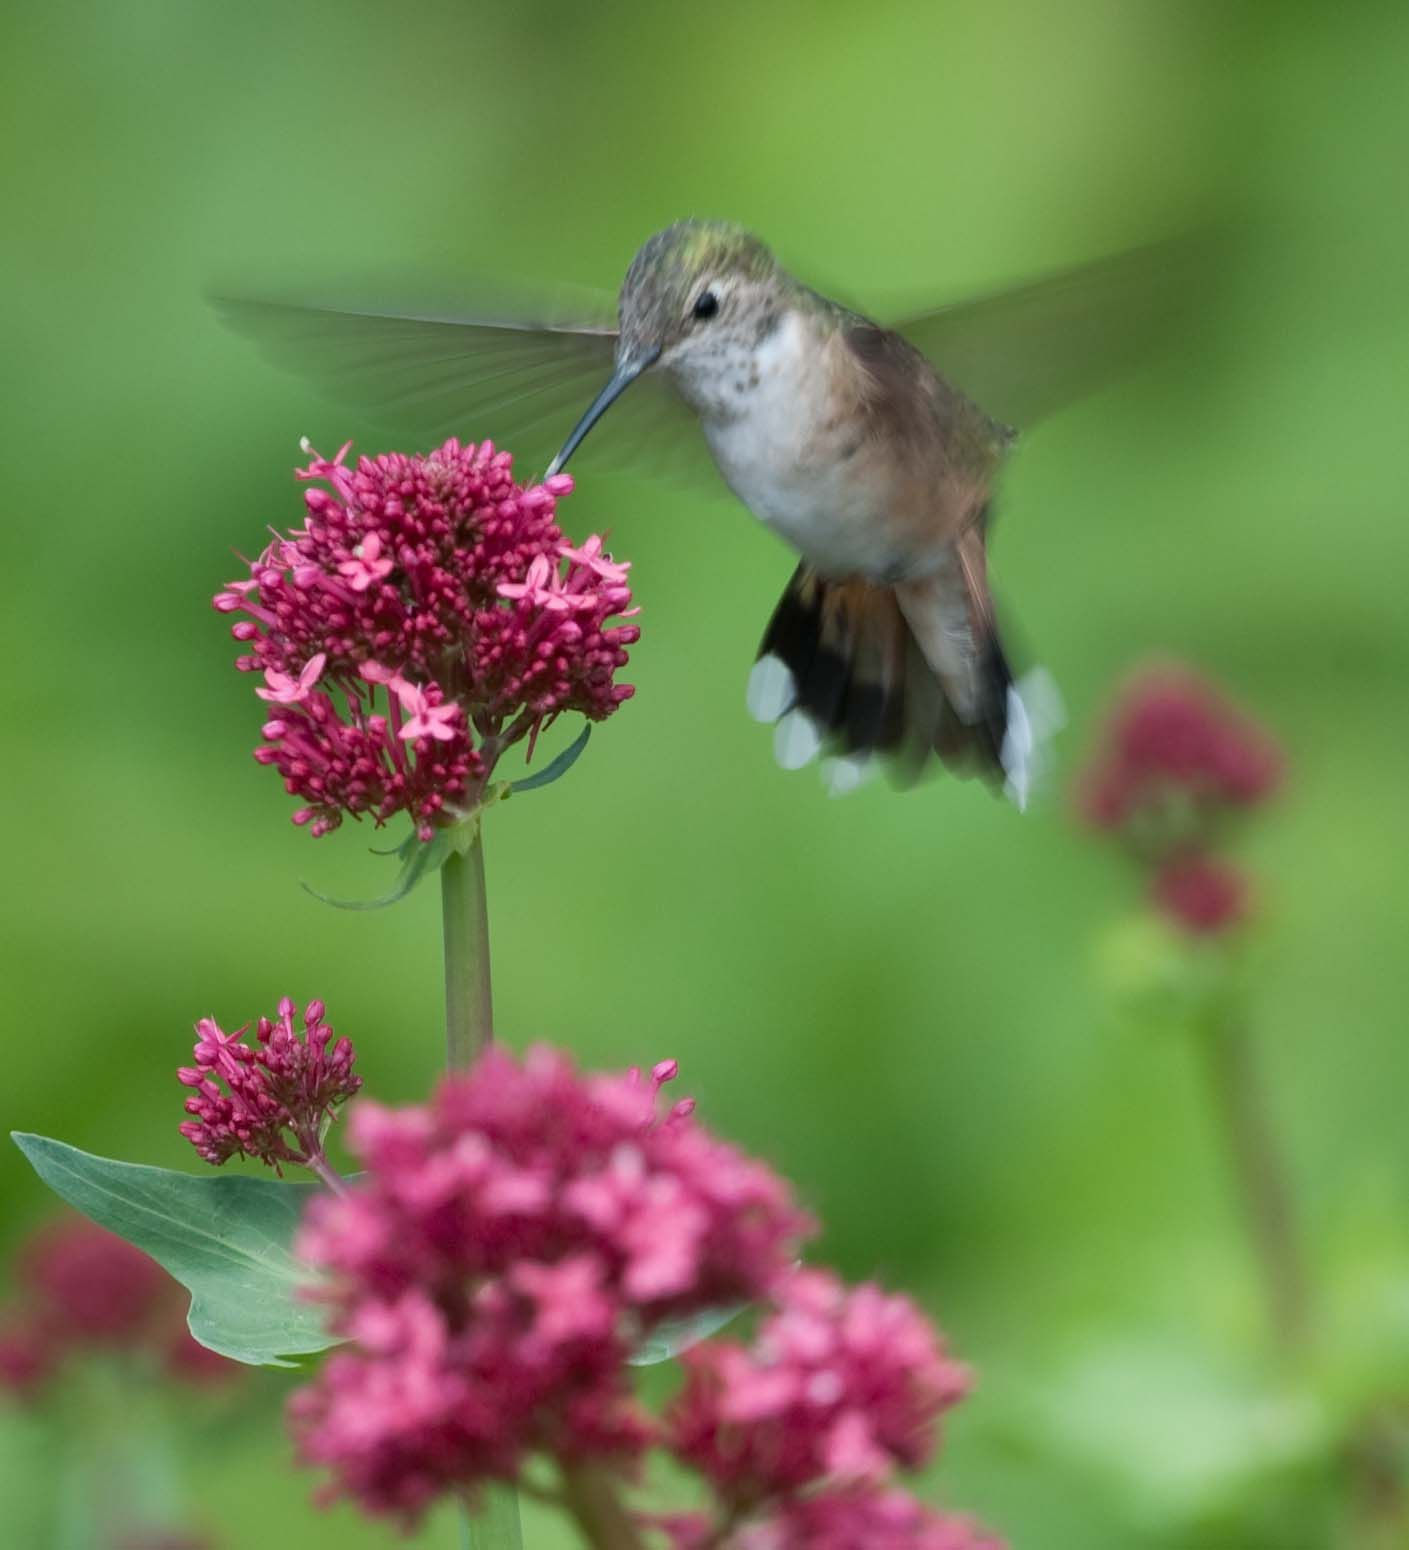 attracting hummingbirds to the backyard garden by growing flowers